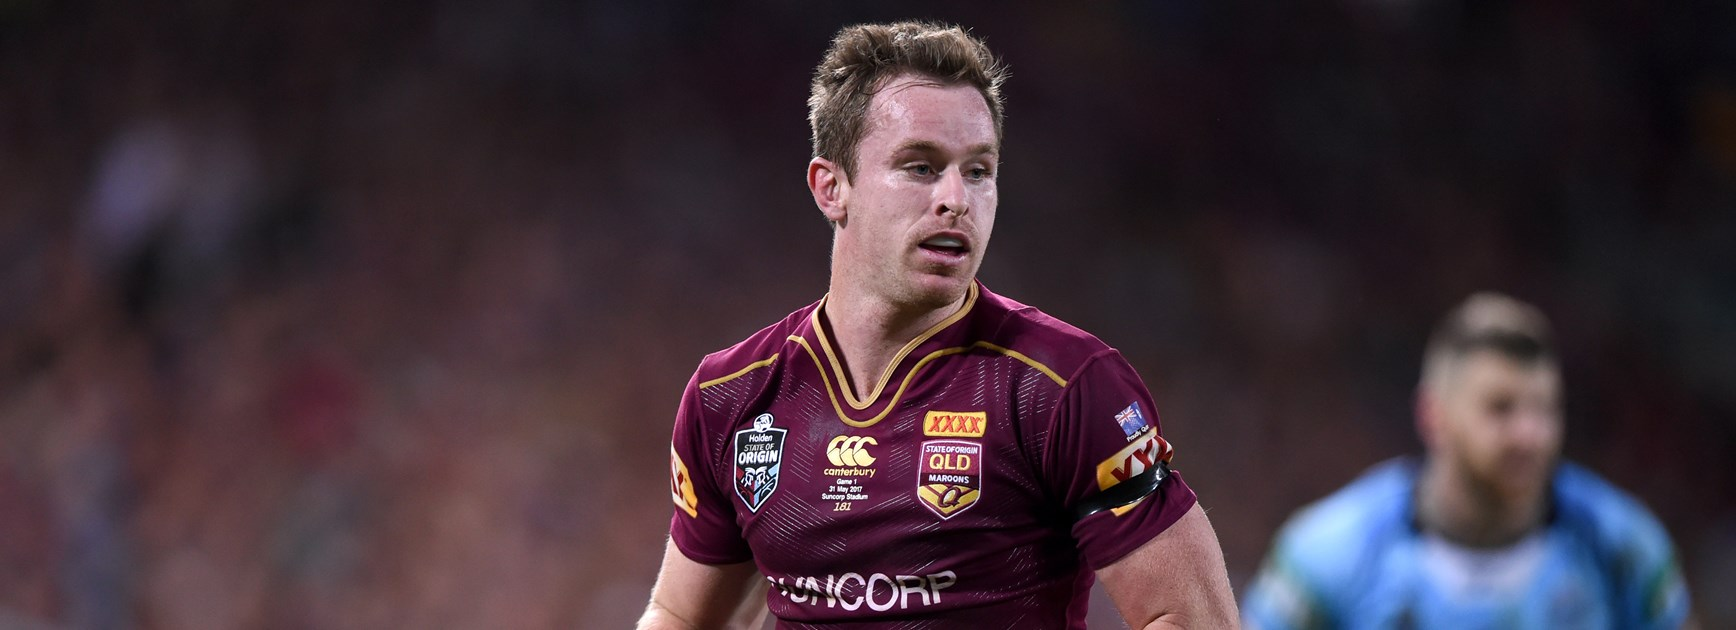 Michael Morgan playing for Queensland.